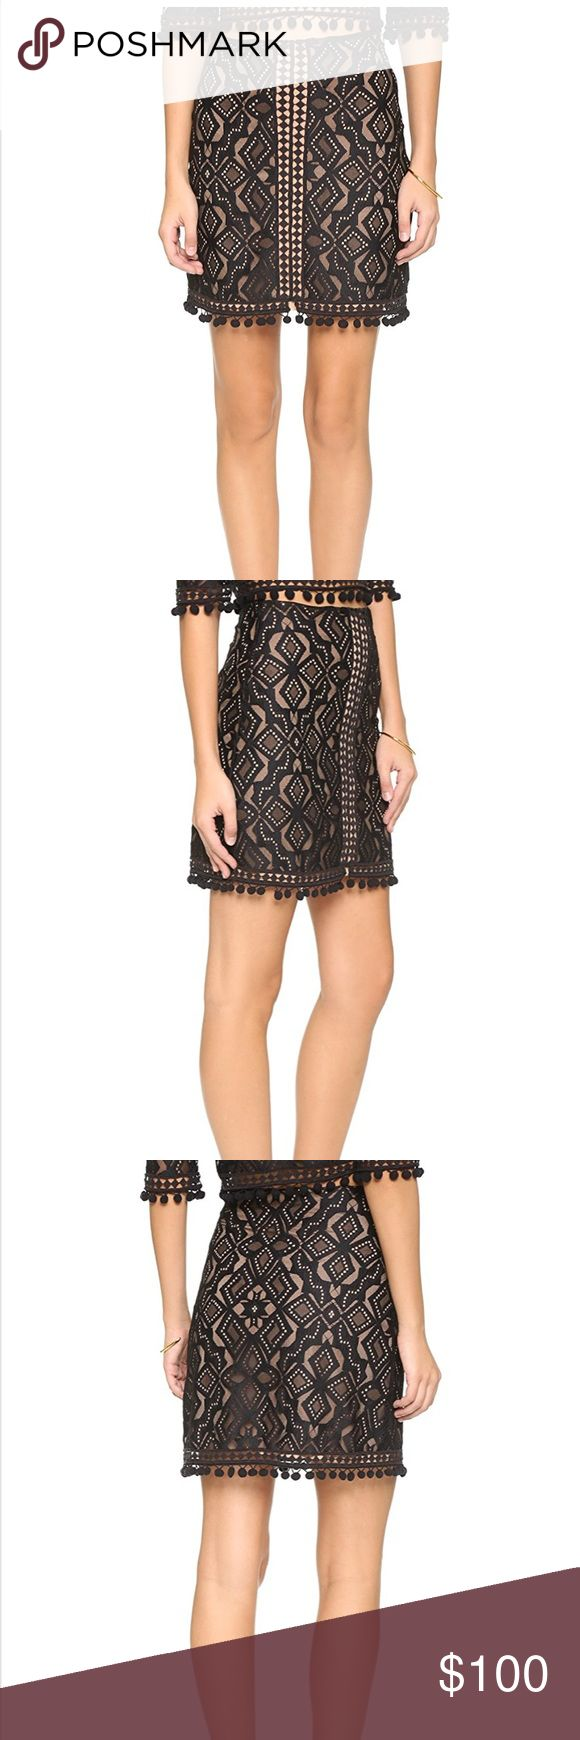 For Love and Lemons Black And Nude Lace Pom Skirt A contoured For Love & Lemons miniskirt in romantic lace. Pom-poms trim the hem. Hidden side zip. Nude lining.  Fabric: Lace. Shell: 60% polyester/40% nylon. Lining: 90% polyester/10% spandex. For Love And Lemons Skirts Mini